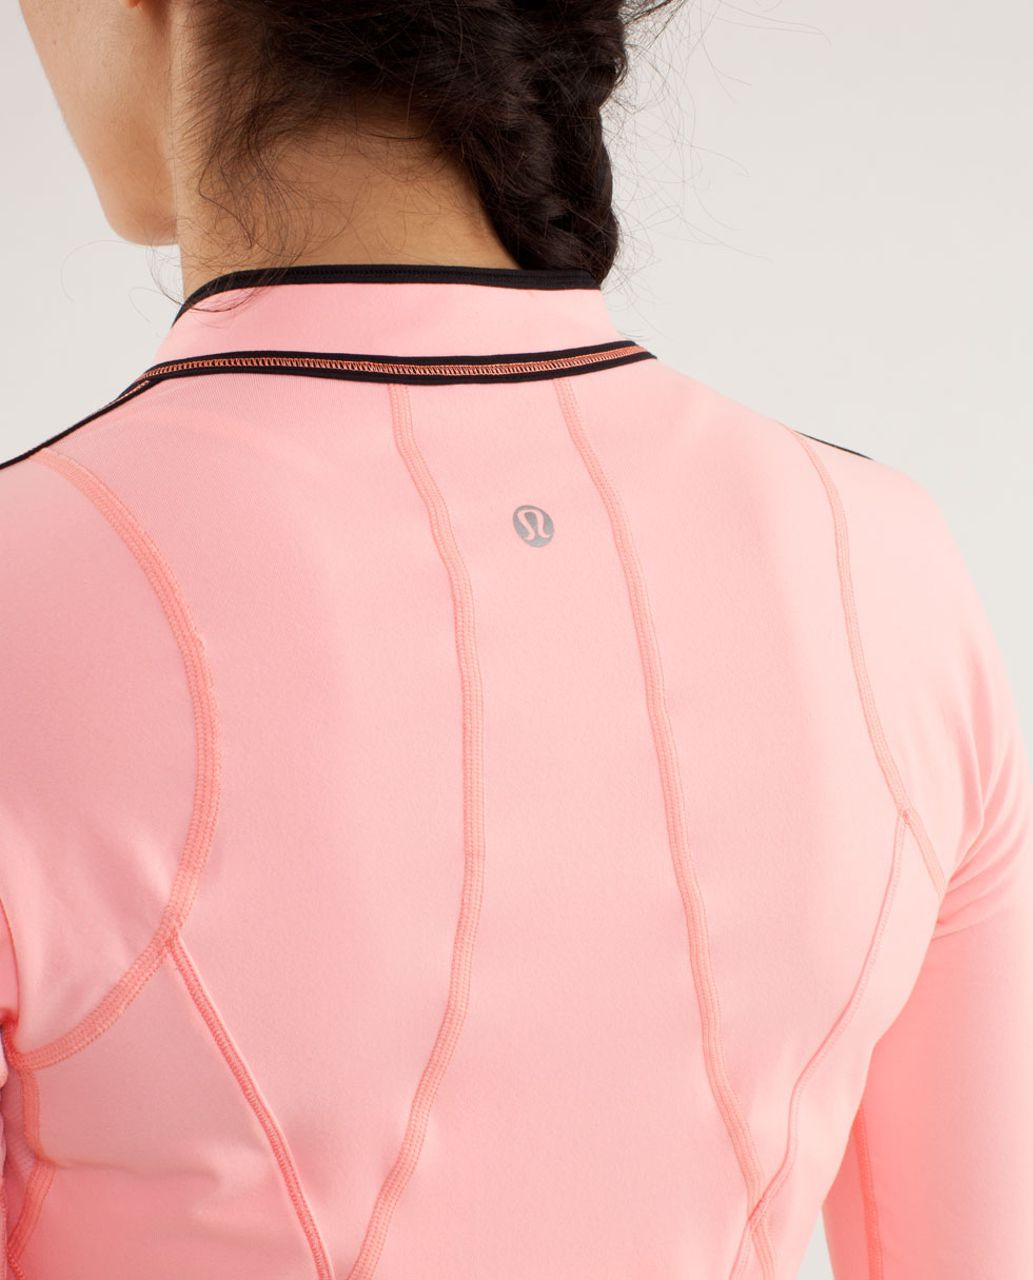 Lululemon Run:  Rise And Shine Pullover - Bleached Coral / Pop Orange